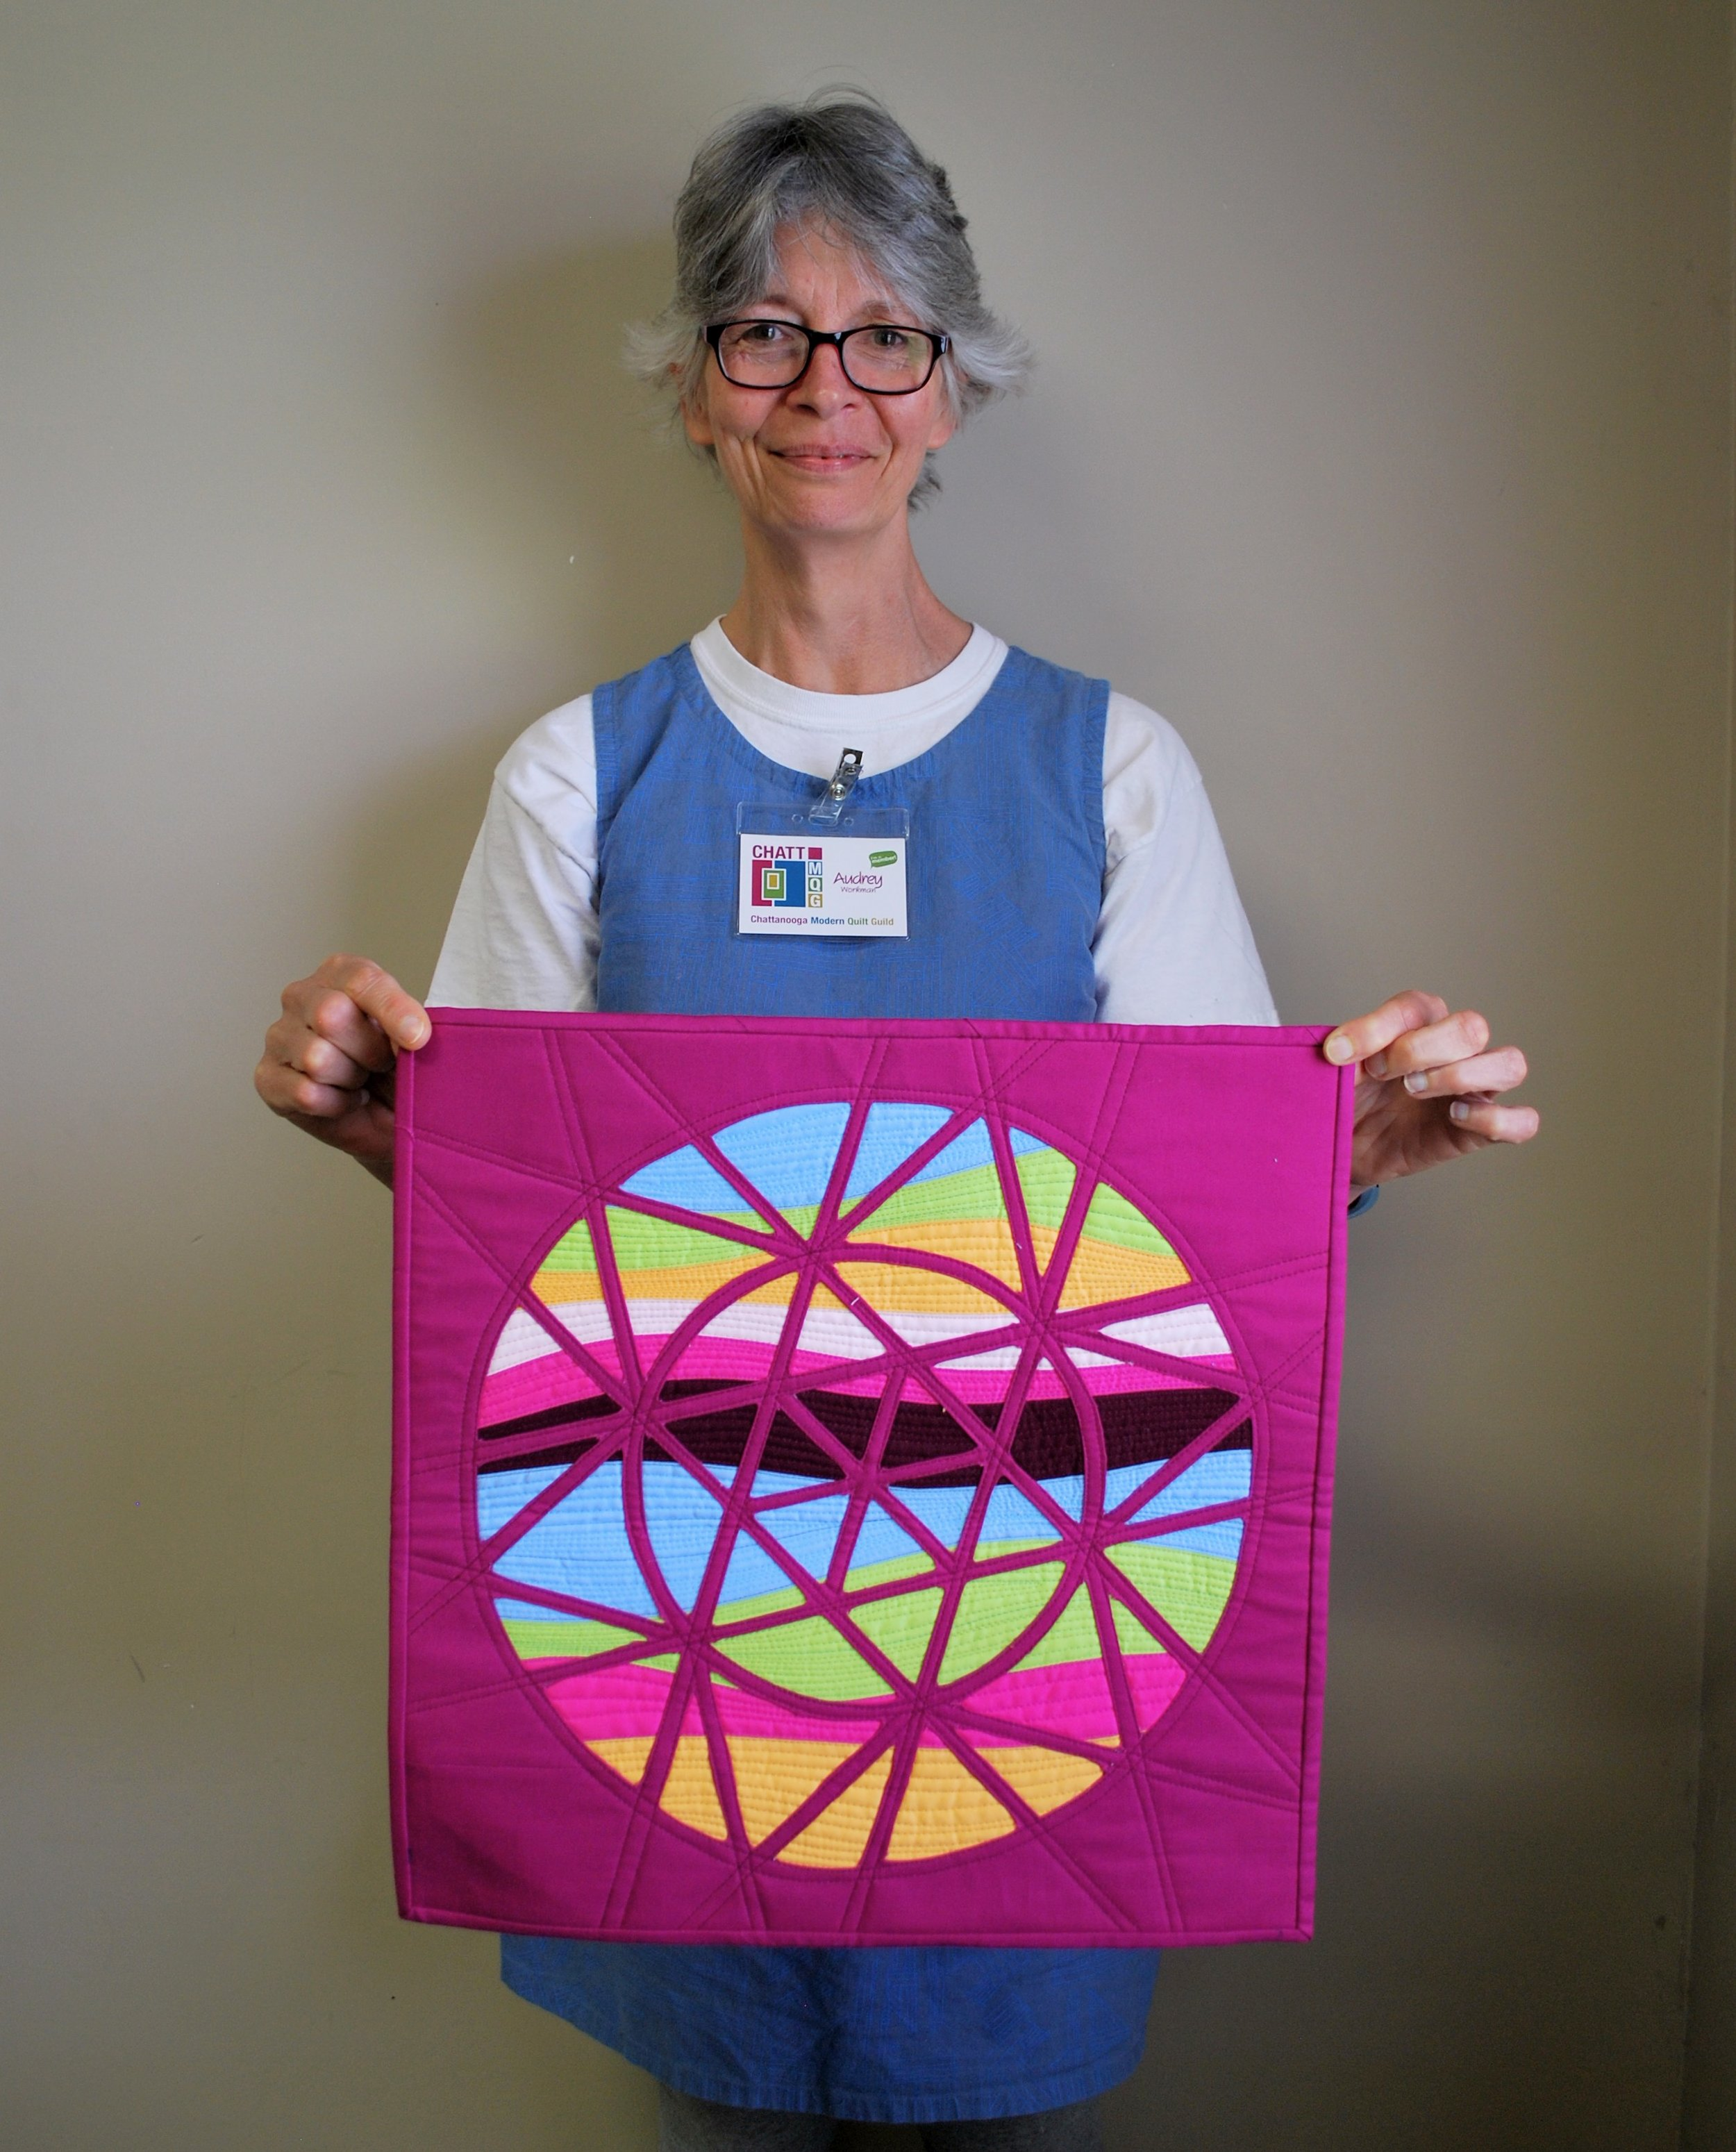 Audrey Workman's entry for the latest Curated Quilts mini quilt challenge